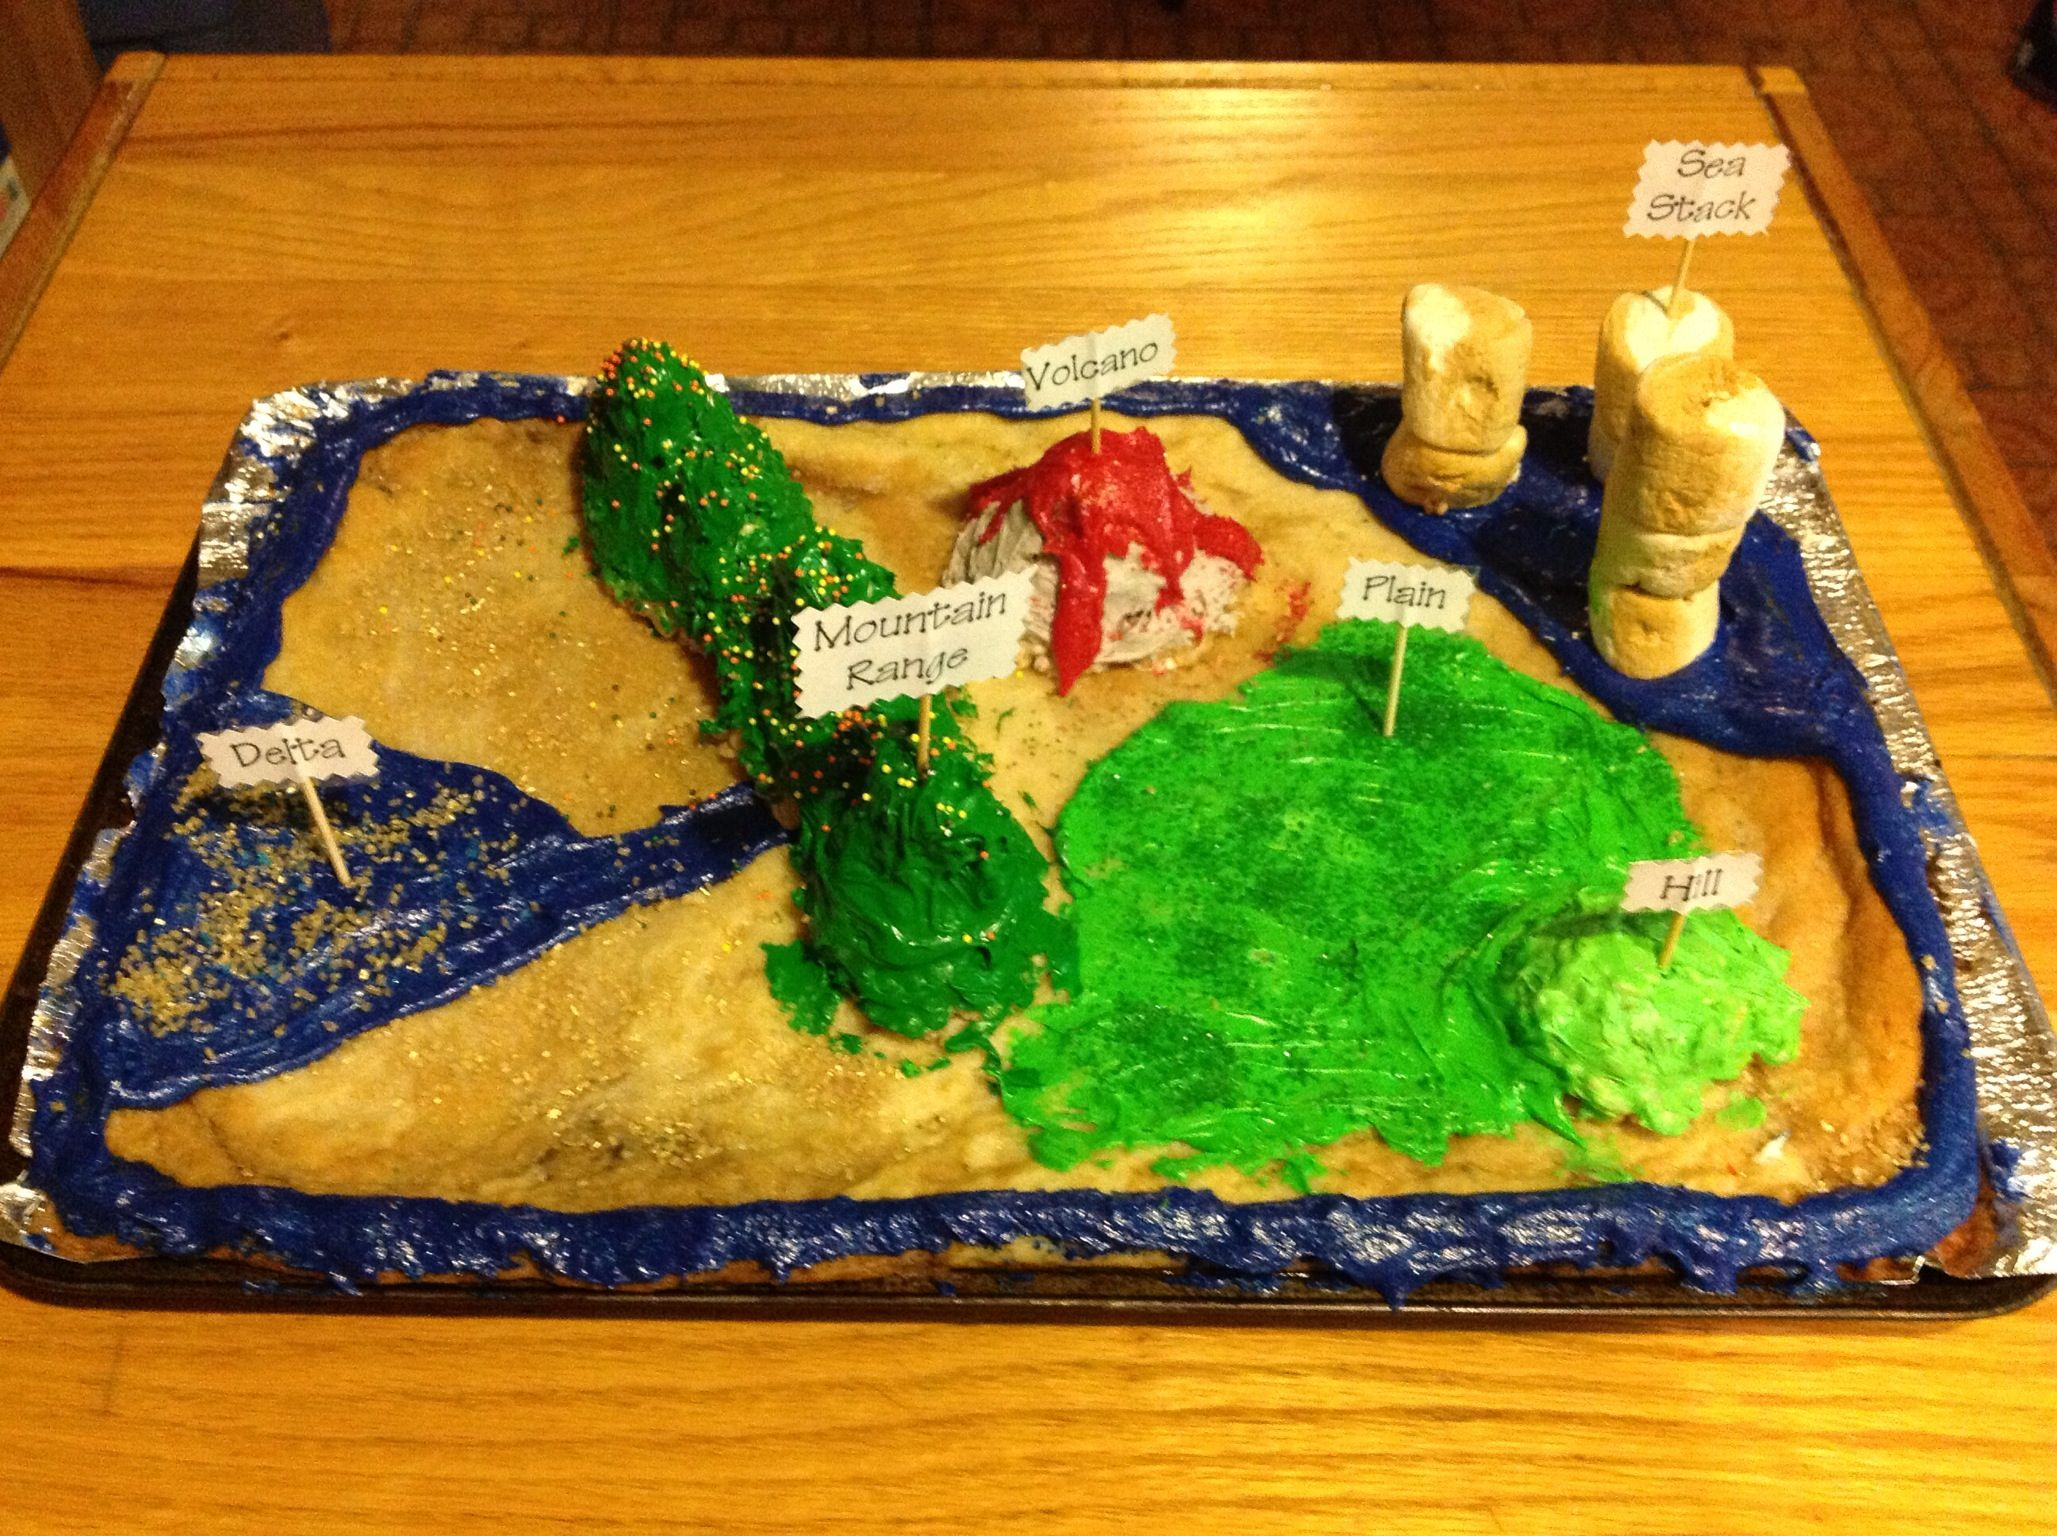 landform projects Social studies landform project: due date: friday, october 28 th create a diorama using a shoe box or a pizza box to demonstrate landform meanings.